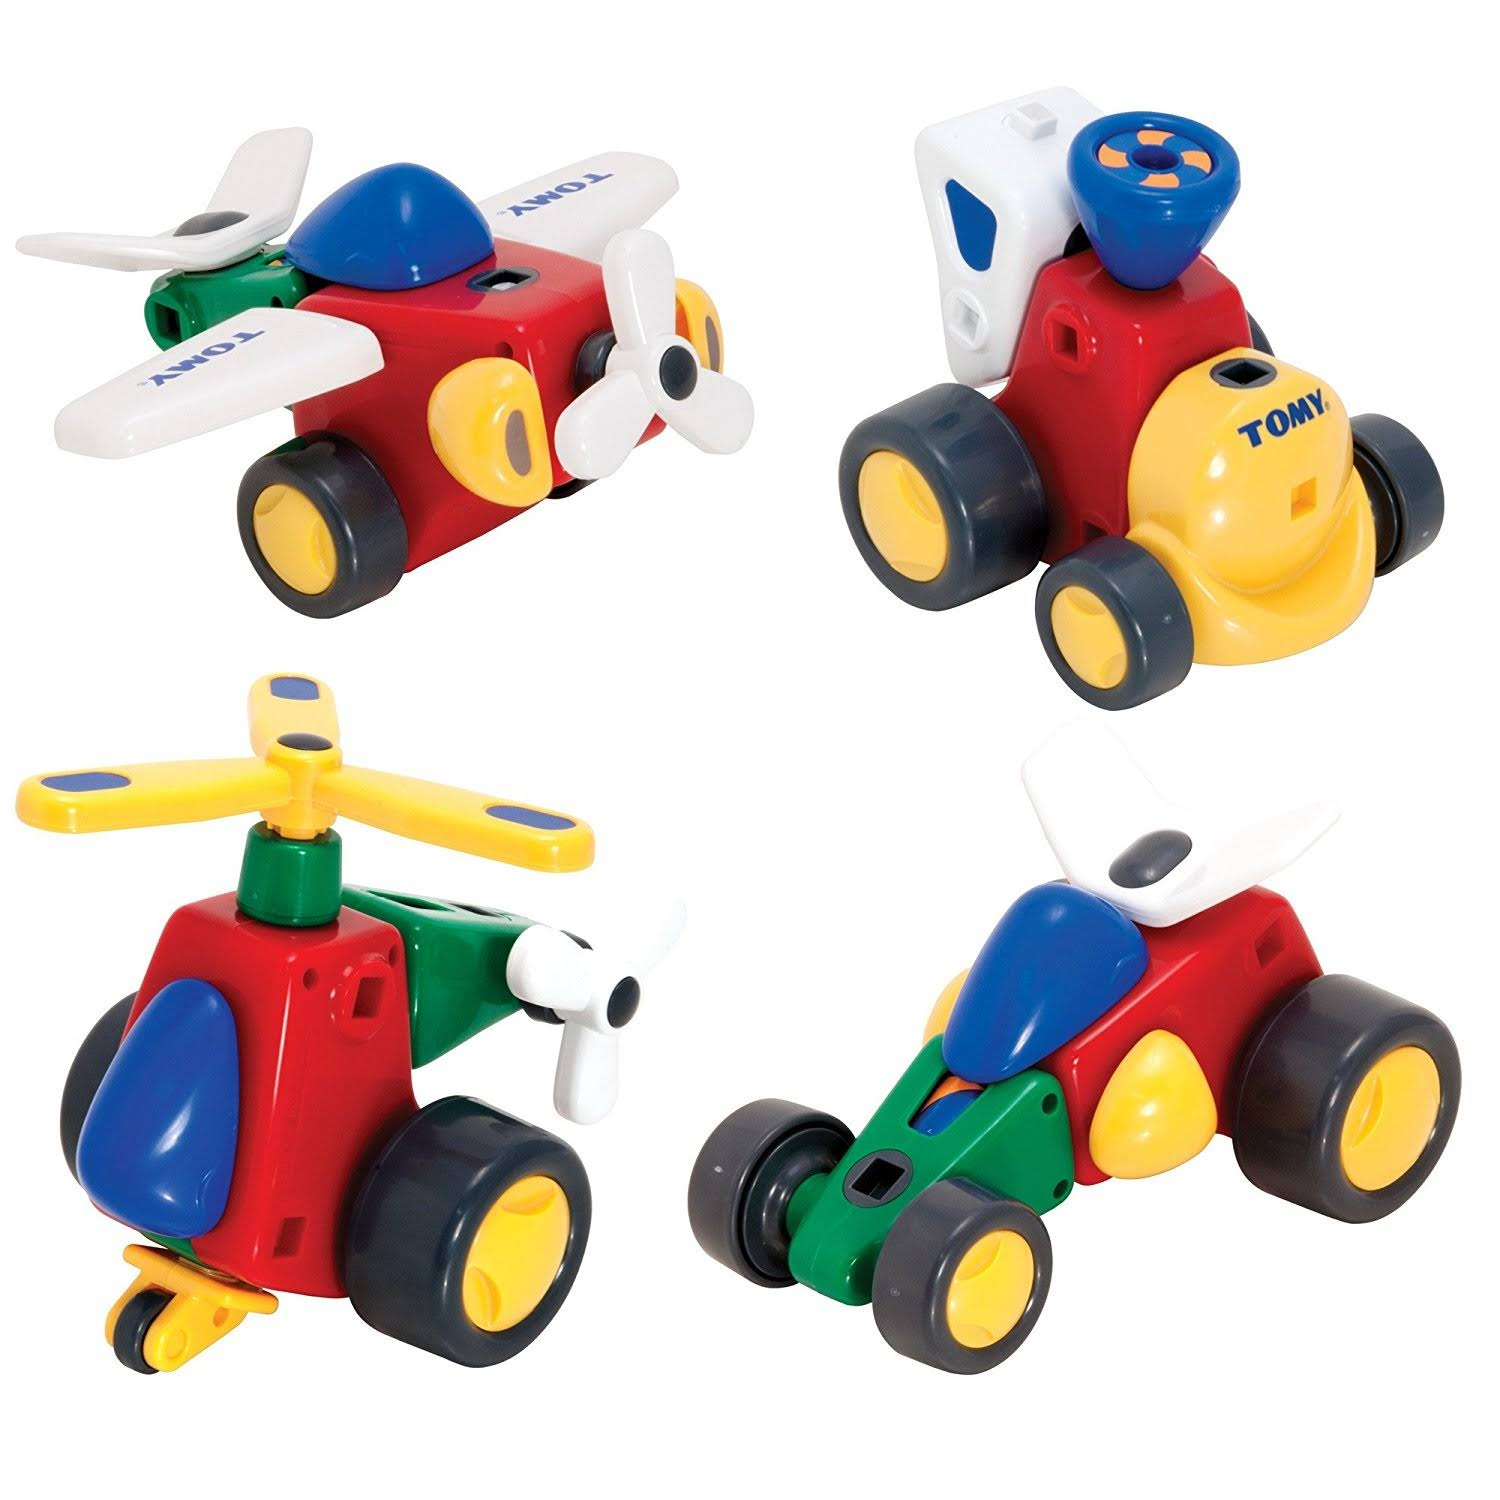 Tomy Constructables Vehicles Building Playset